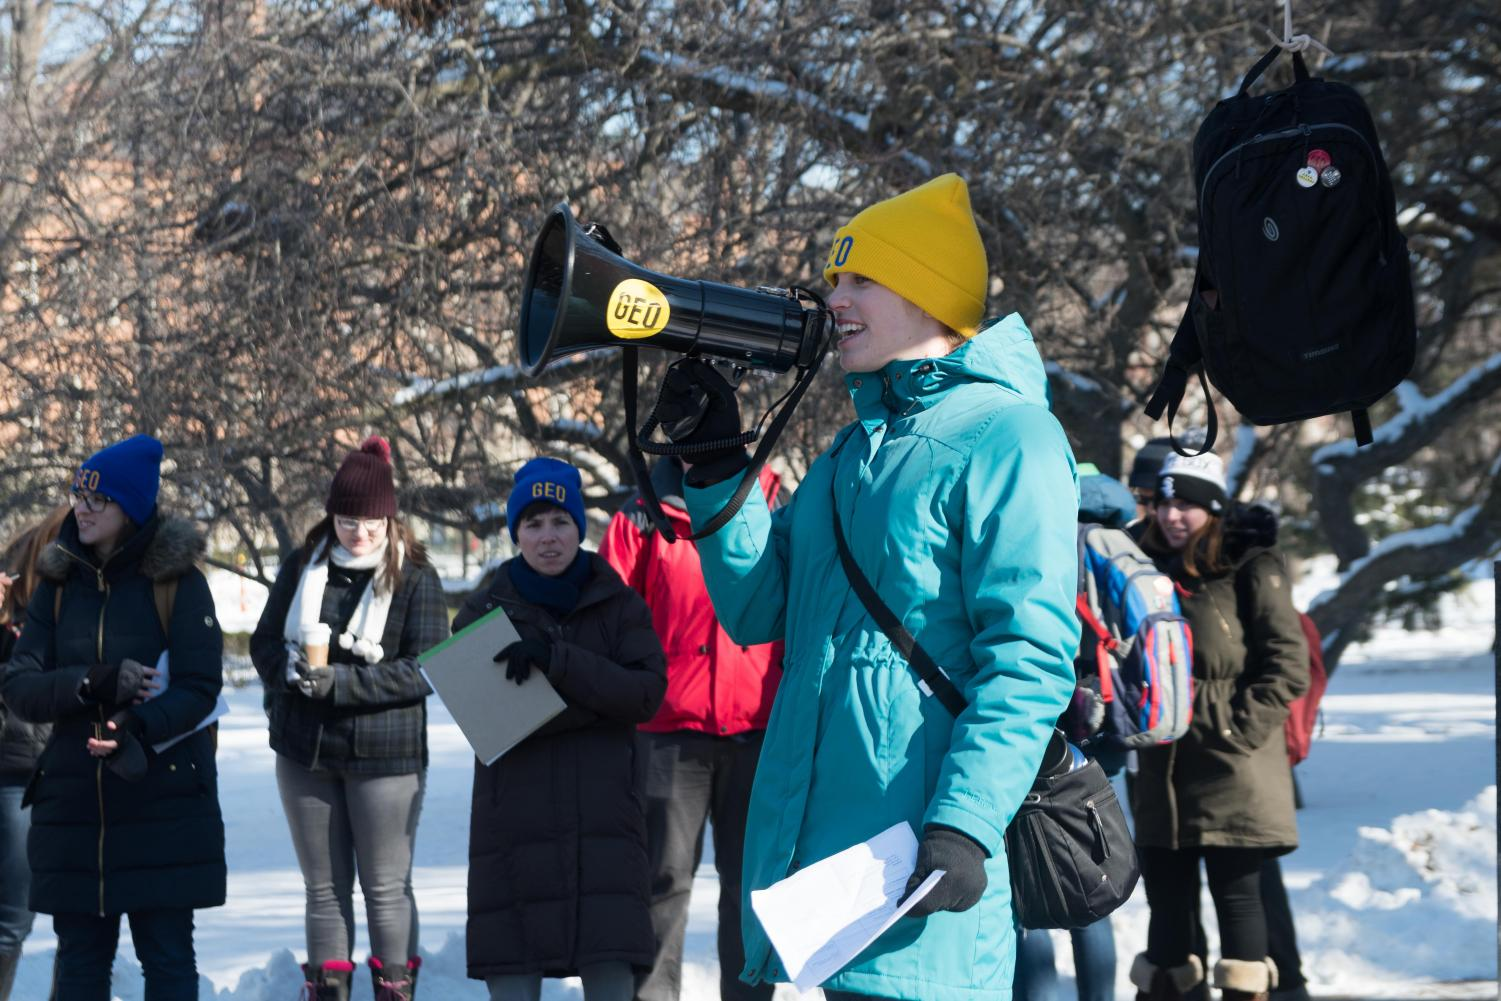 Graduate employees protest at the Alma Mater for a fair contract on Thursday, Jan 18.